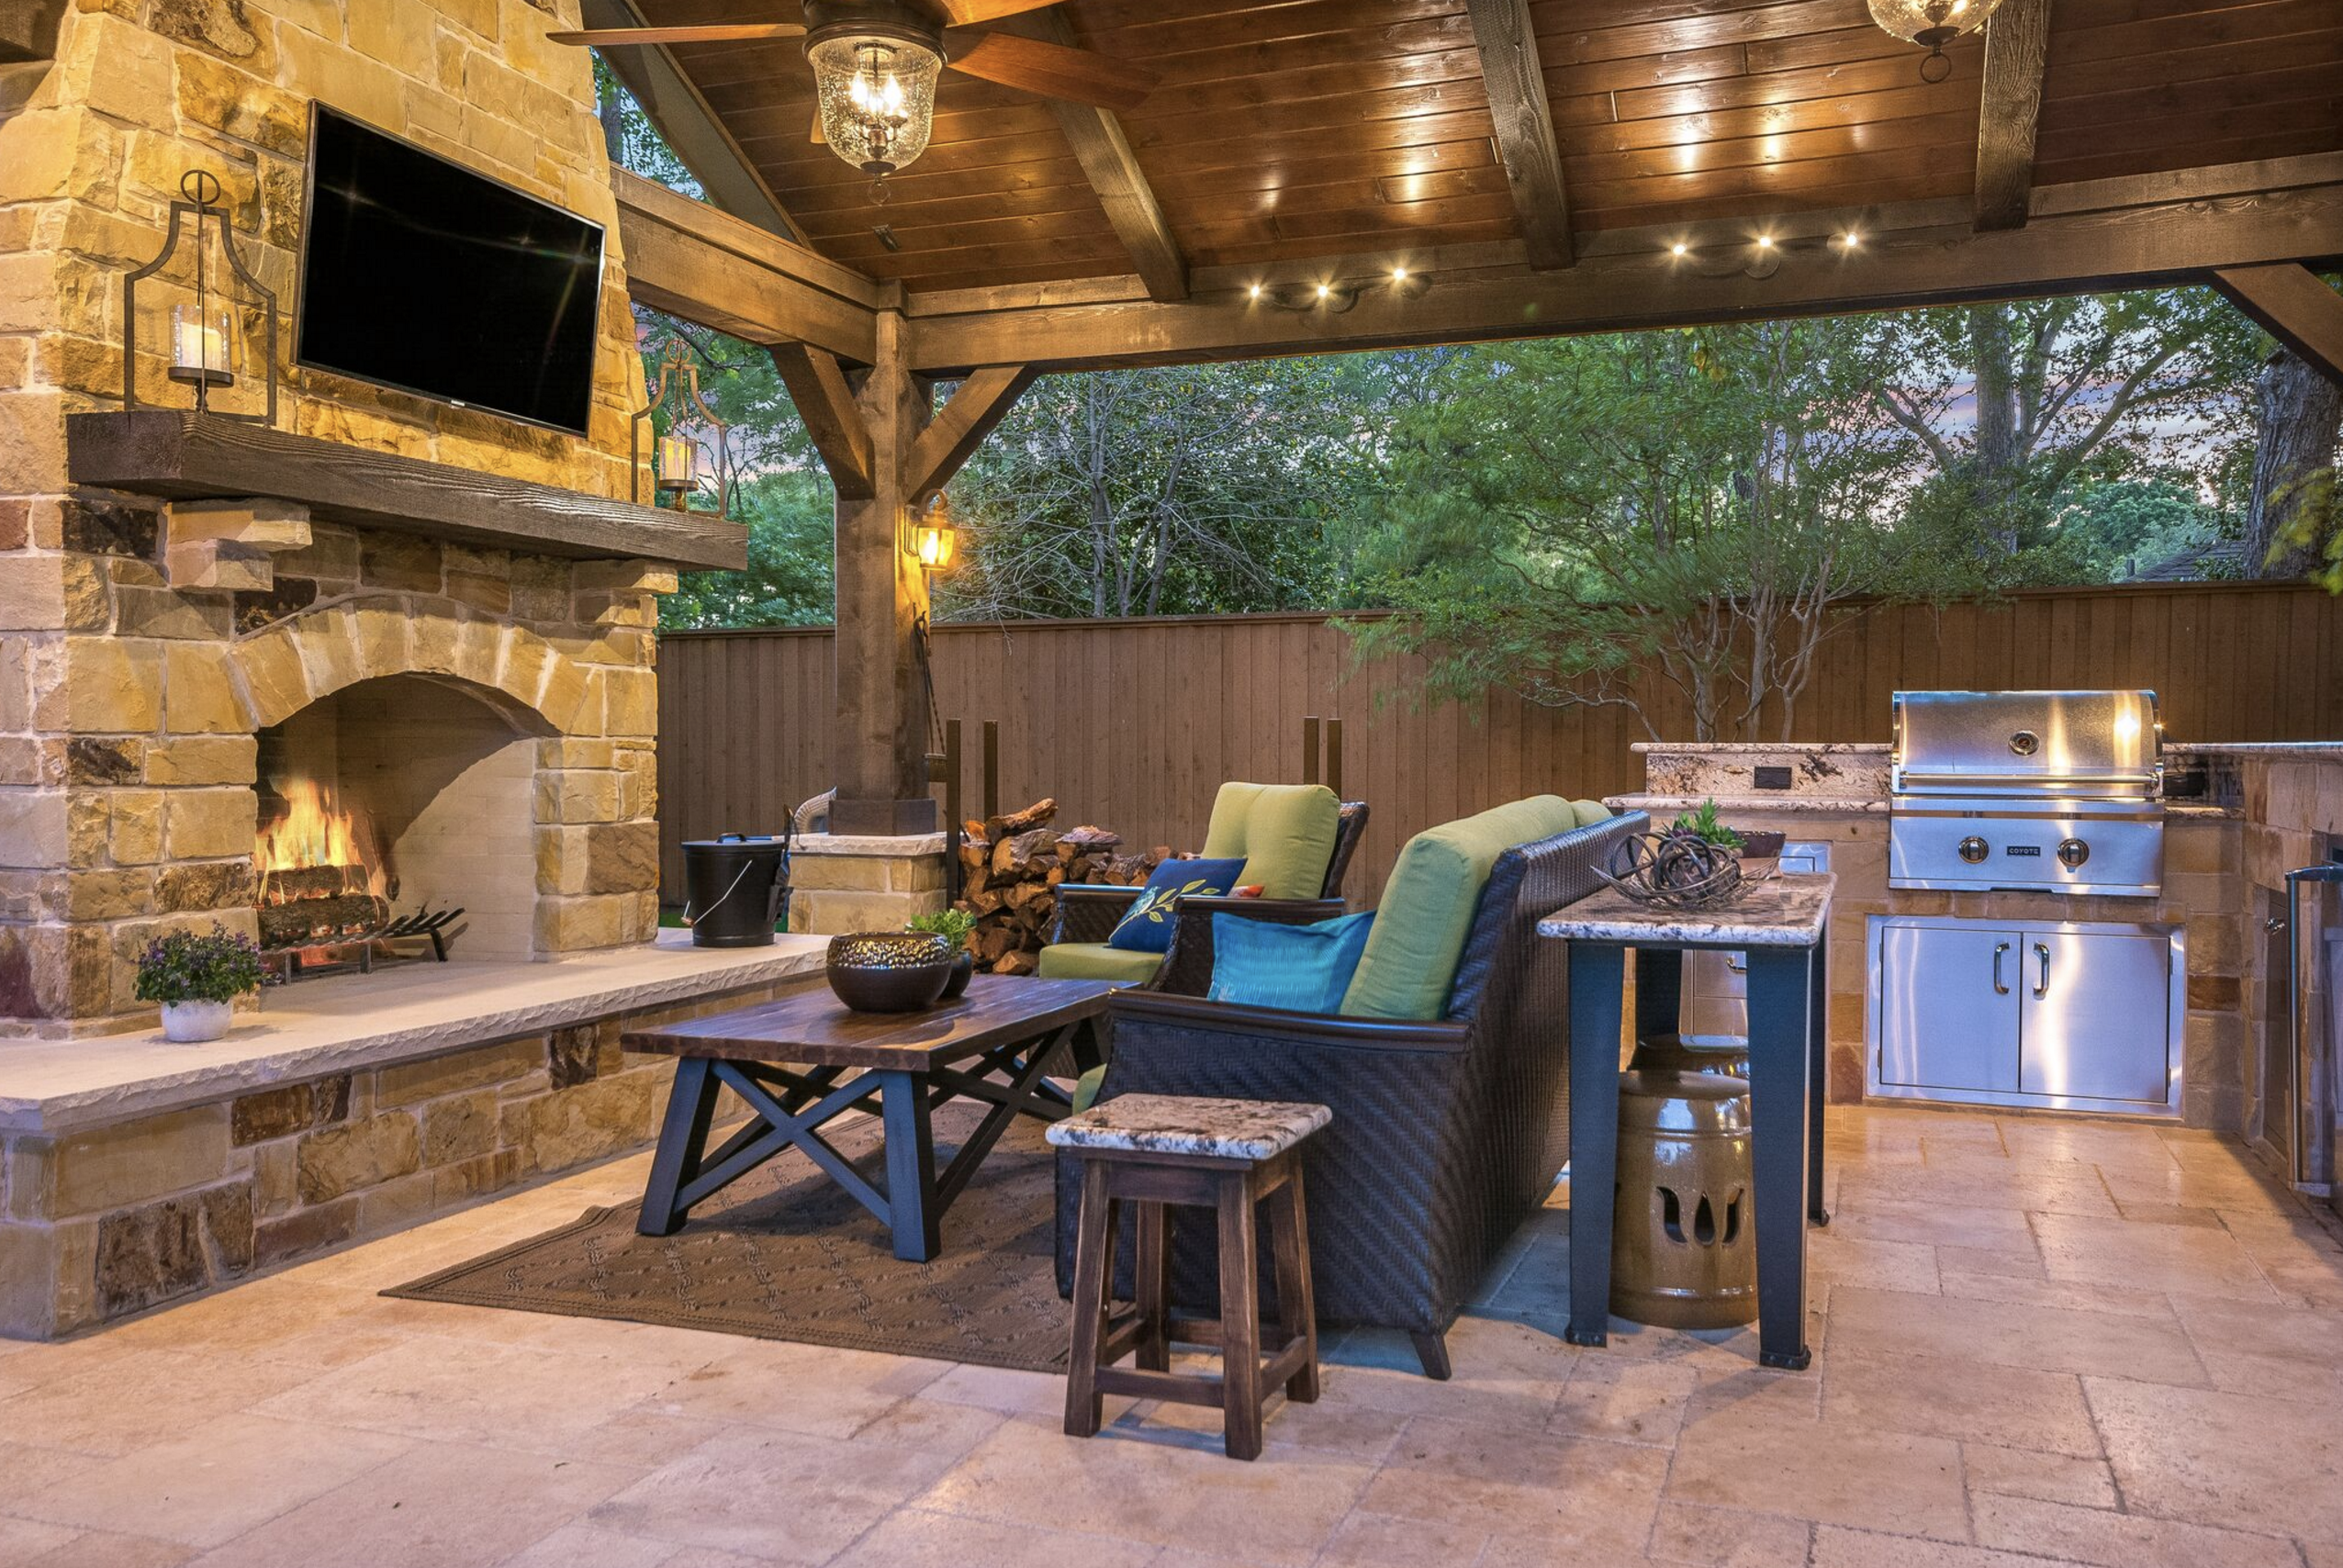 Rustic Outdoor Living Space With Outdoor Kitchen By Texas Custom